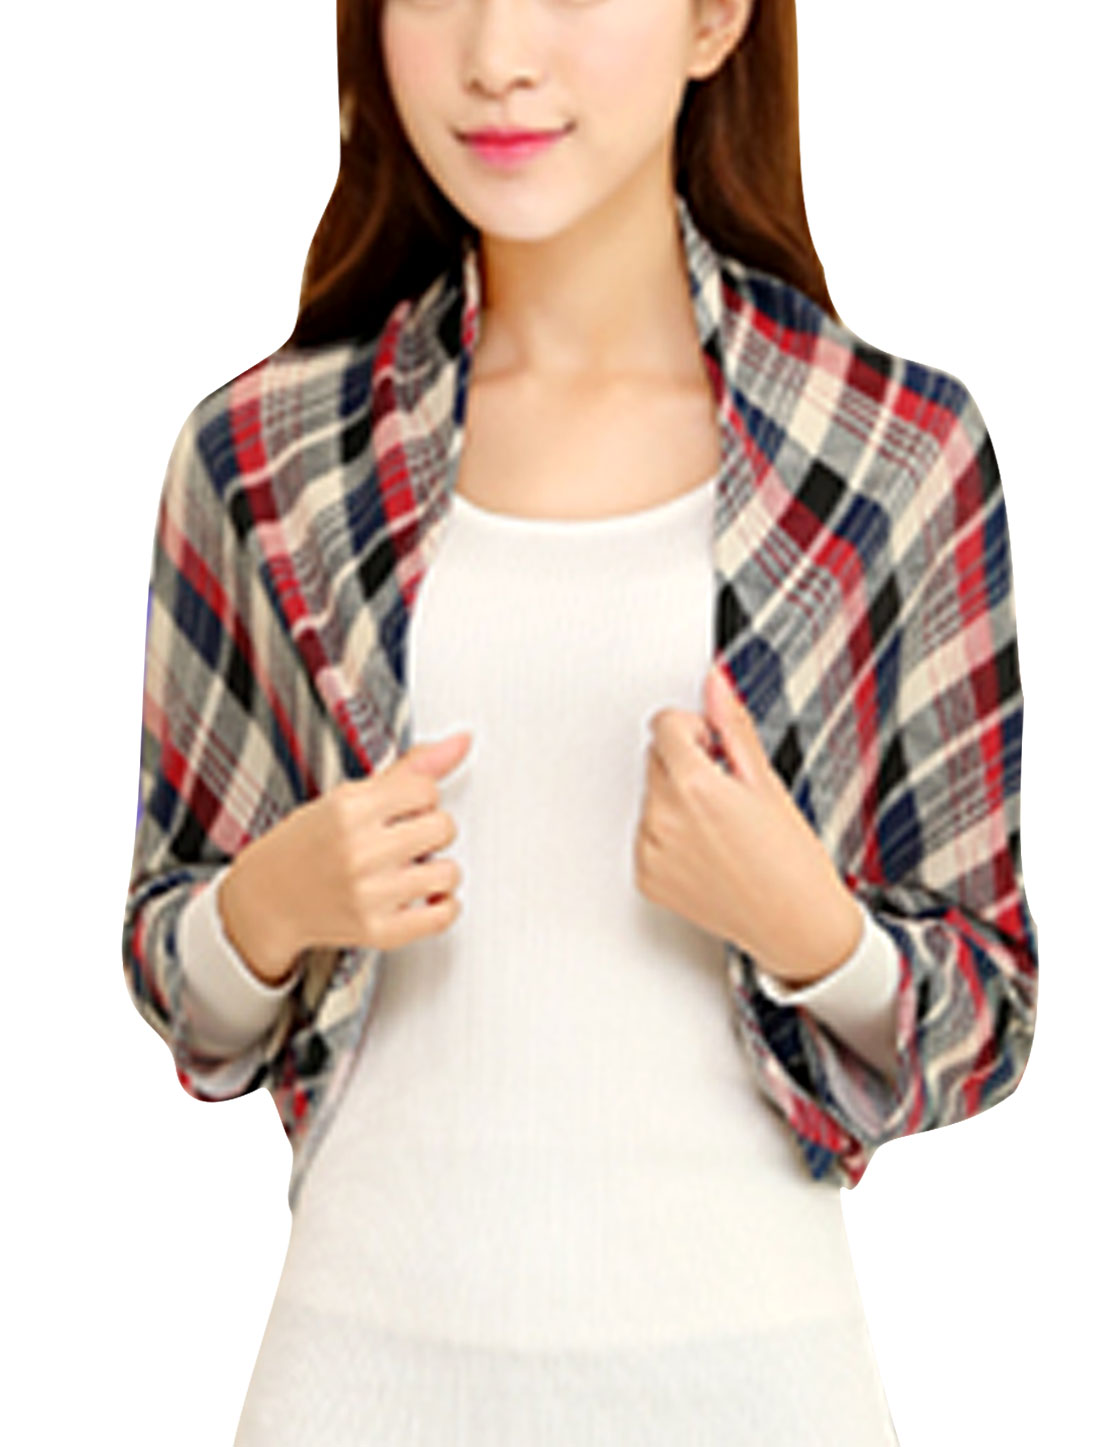 Plaids Print Front Opening Leisure Knit Shrug Bolero for Women Navy Blue Red XS